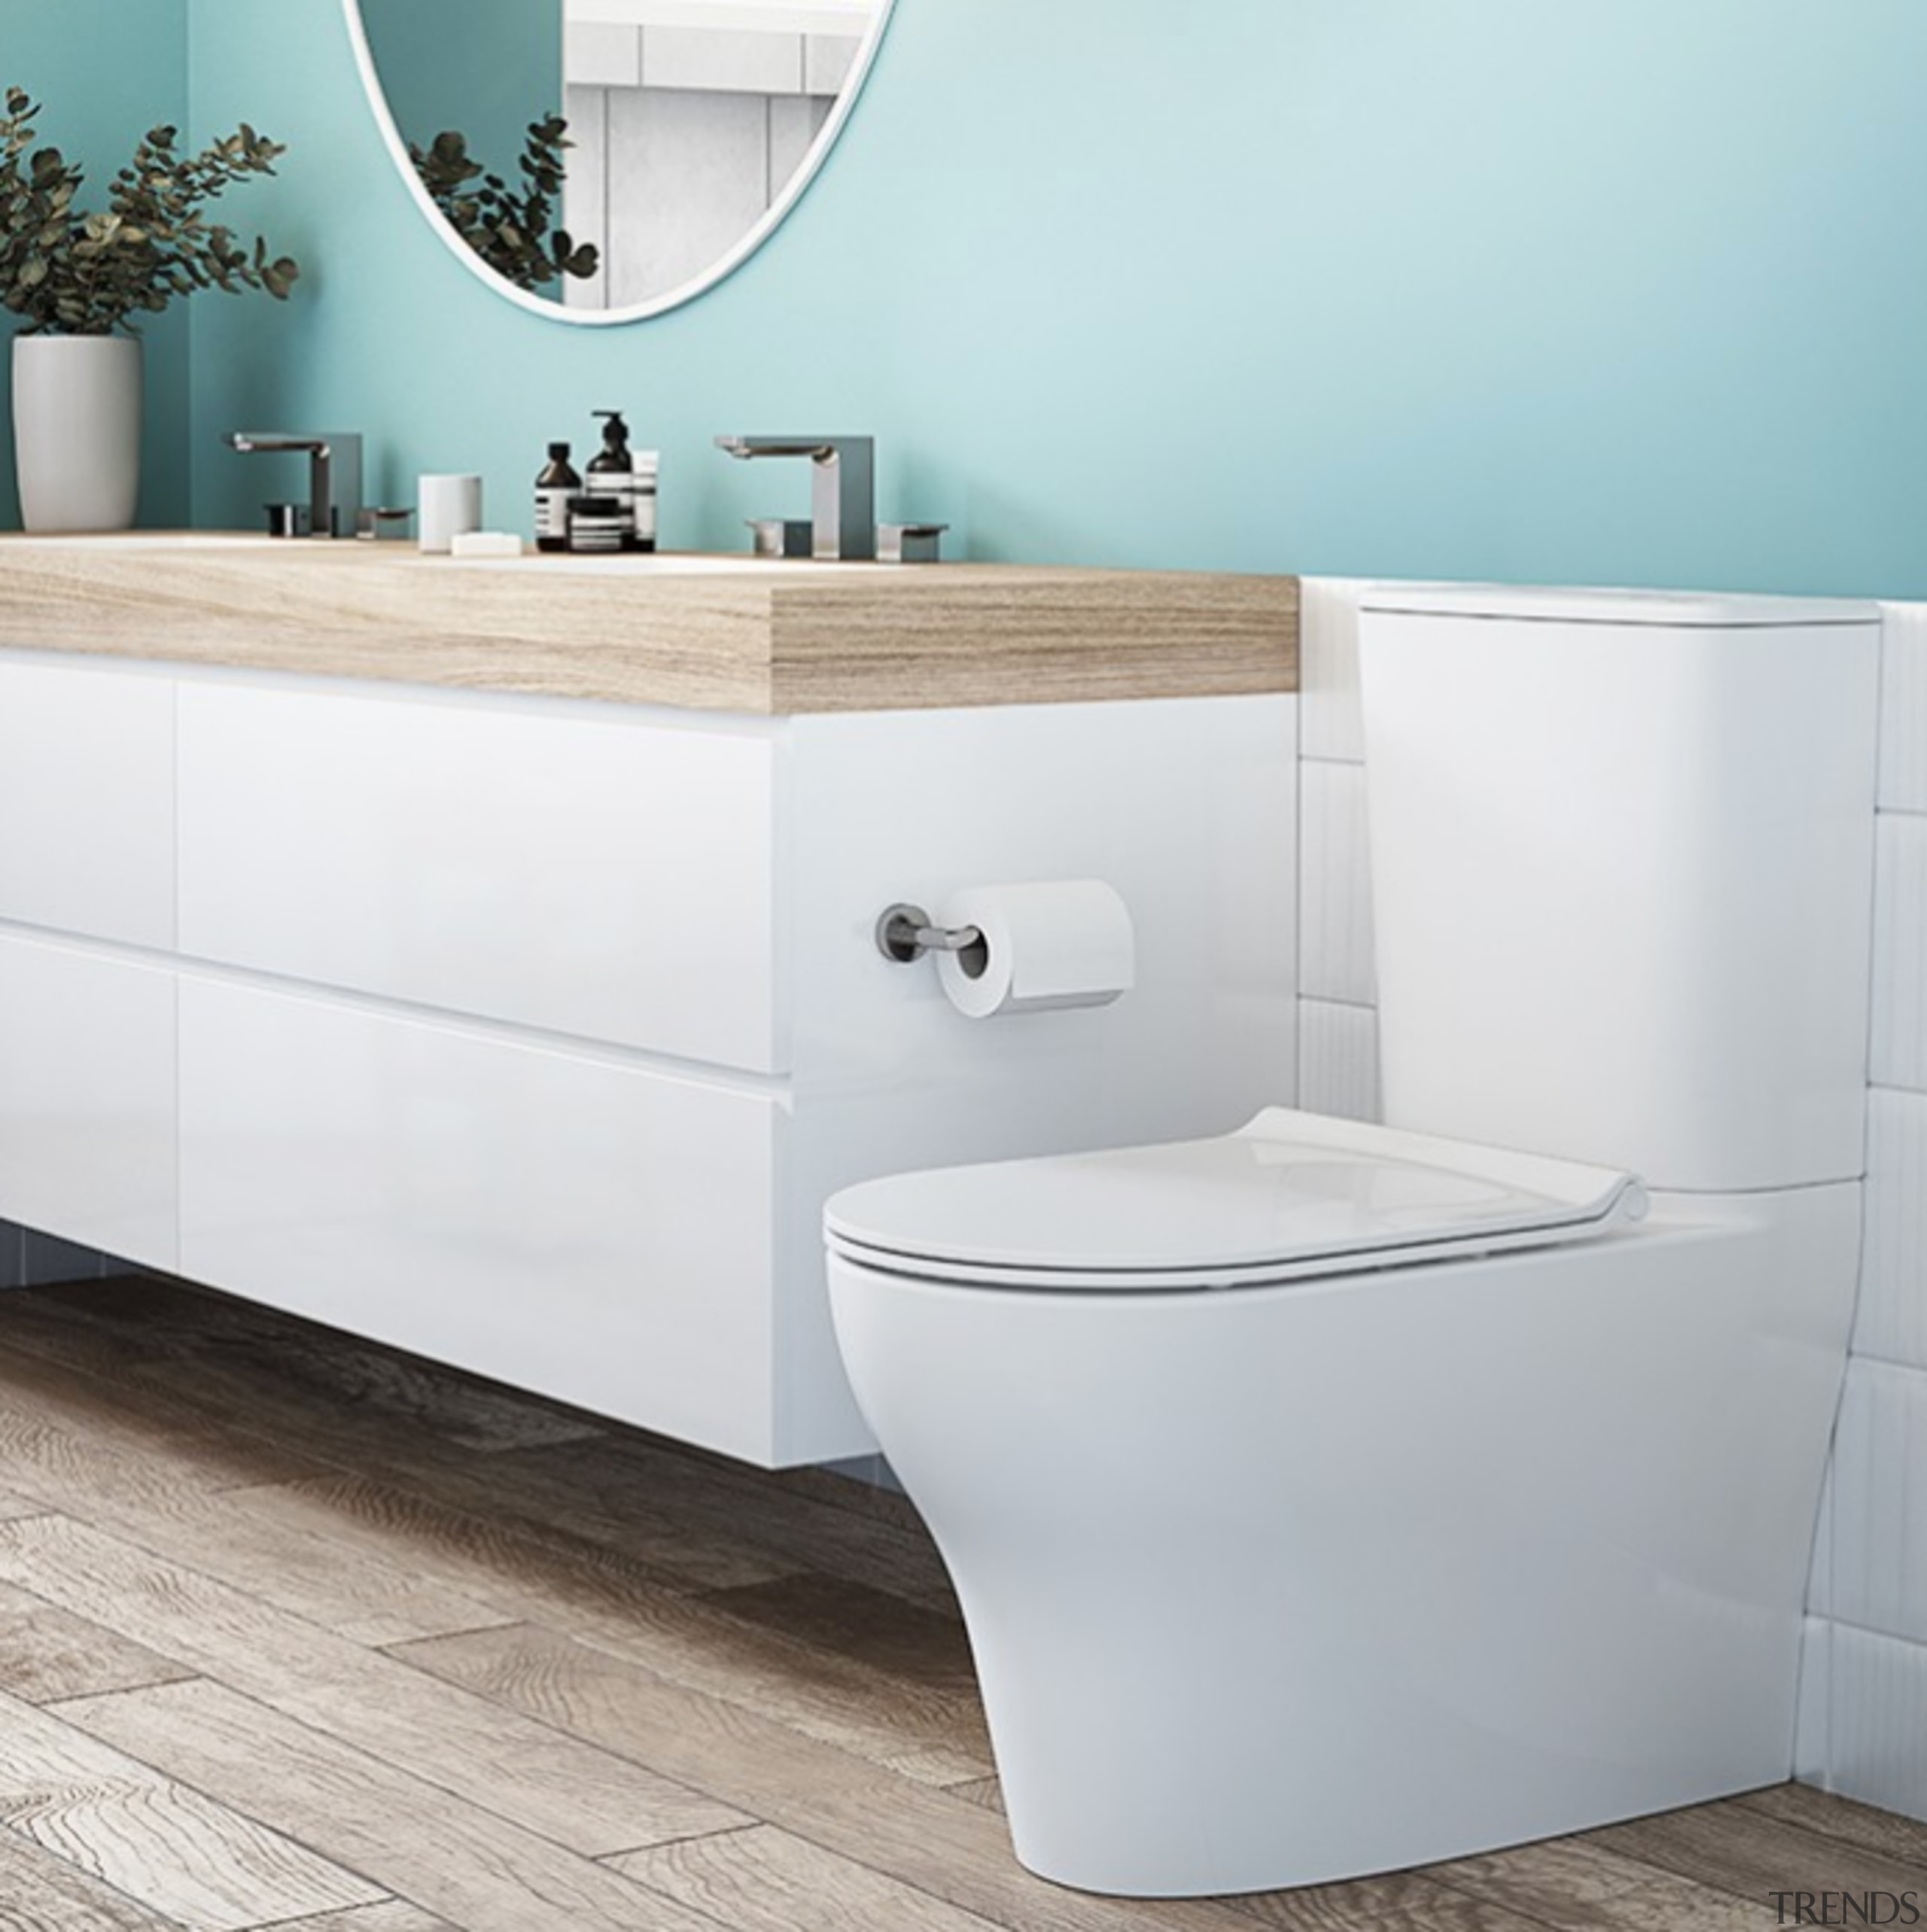 American Standard Cygnet Hygiene Toilet – available at architecture, bathroom, bathtub, ceramic, floor, flooring, furniture, interior design, material property, plumbing fixture, product, property, room, sink, tap, tile, toilet, wall, gray, white